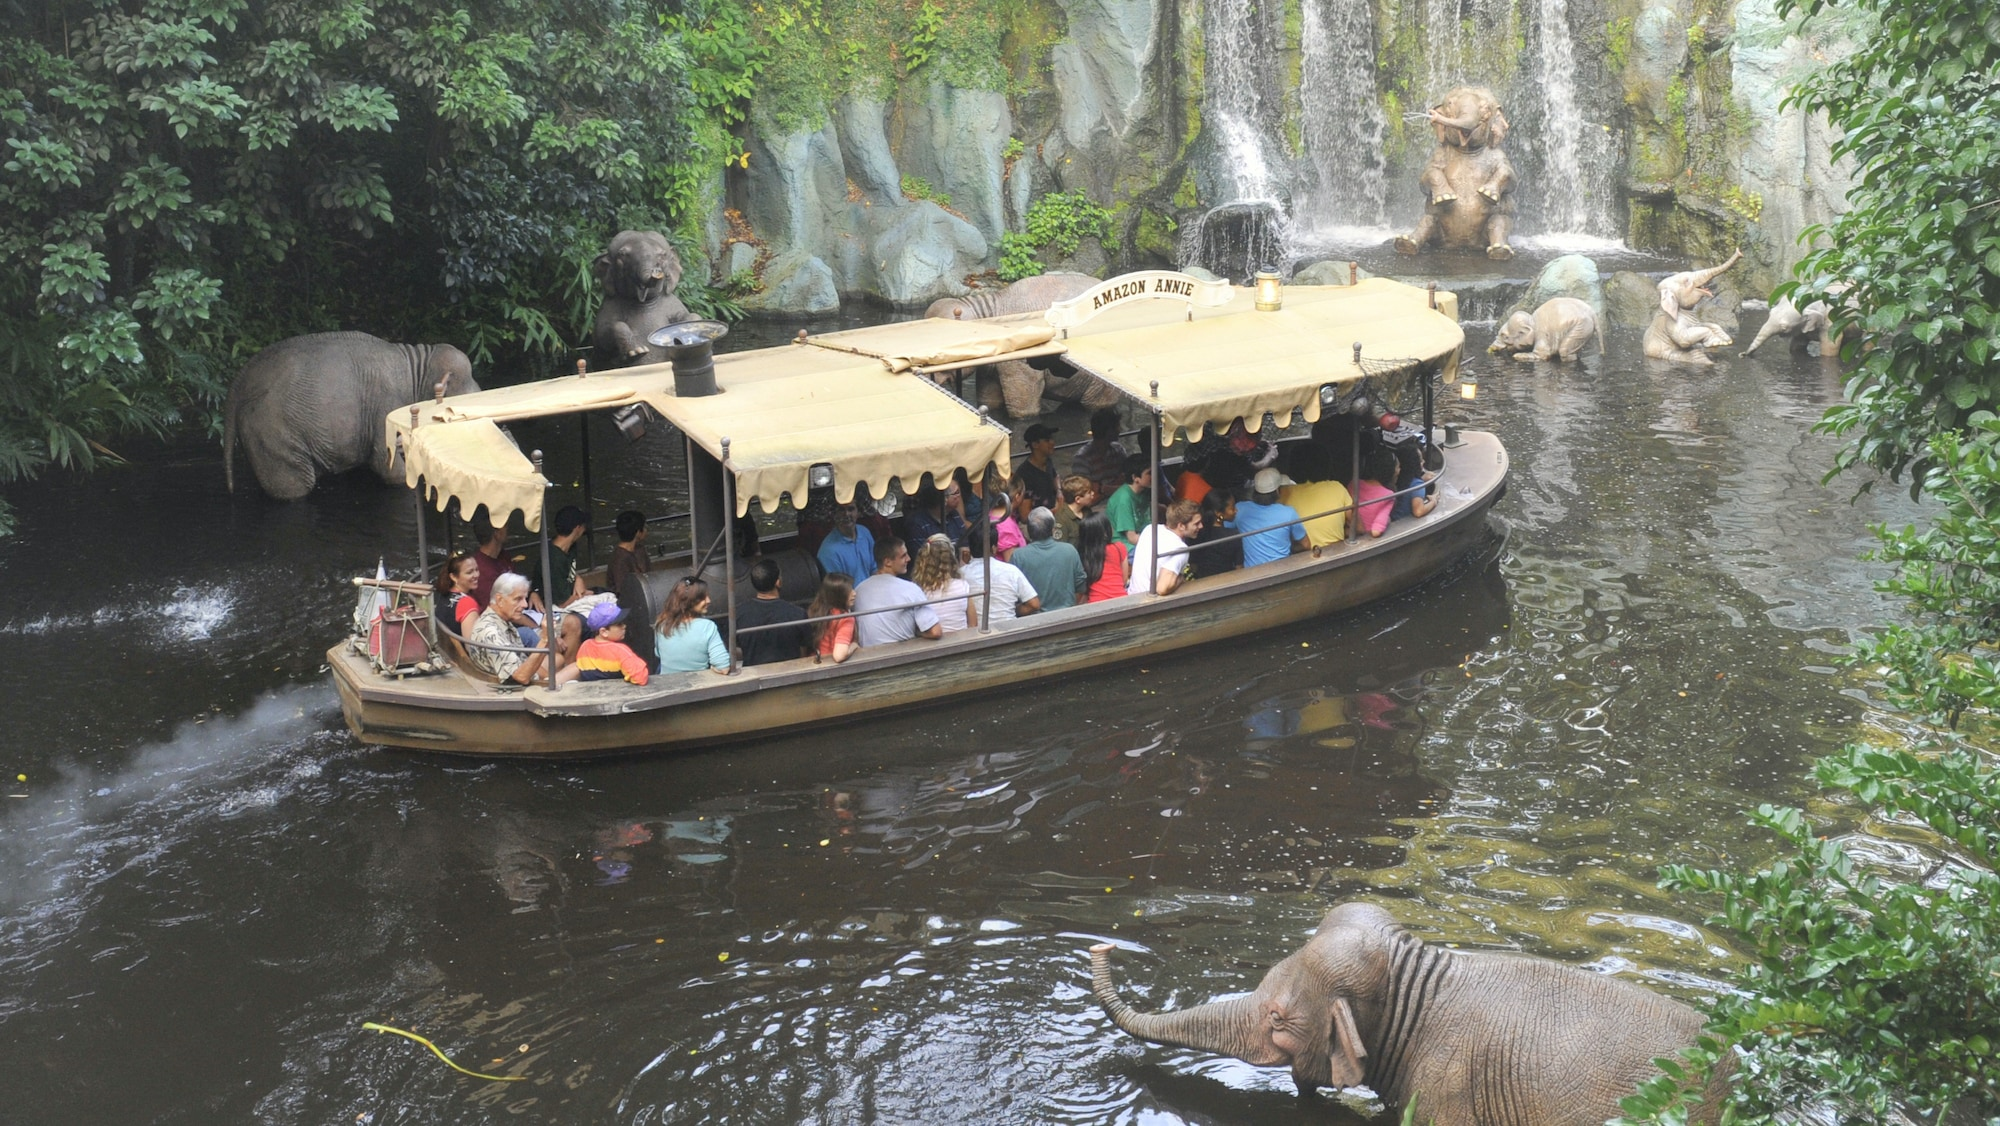 Image of a boat going by an elephant from the Jungle Cruise ride.